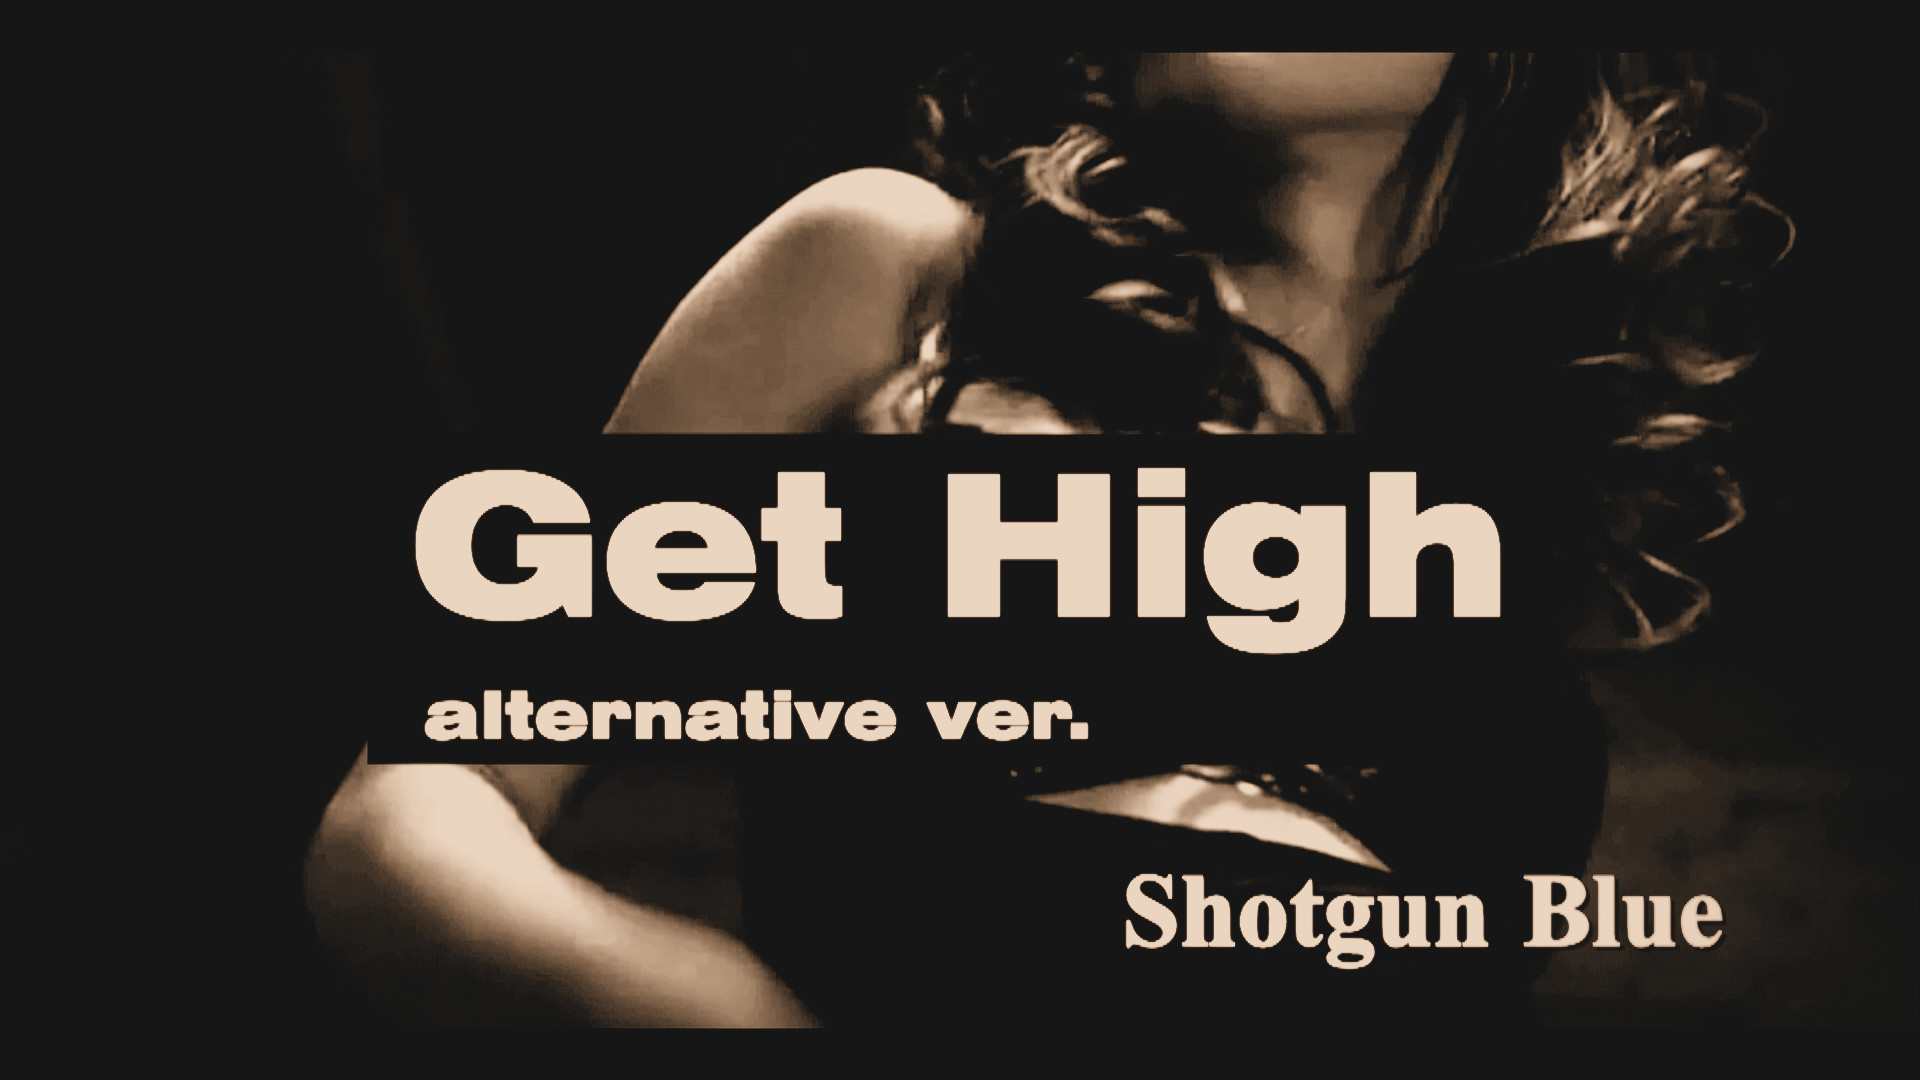 Get High ~alternative ver.~